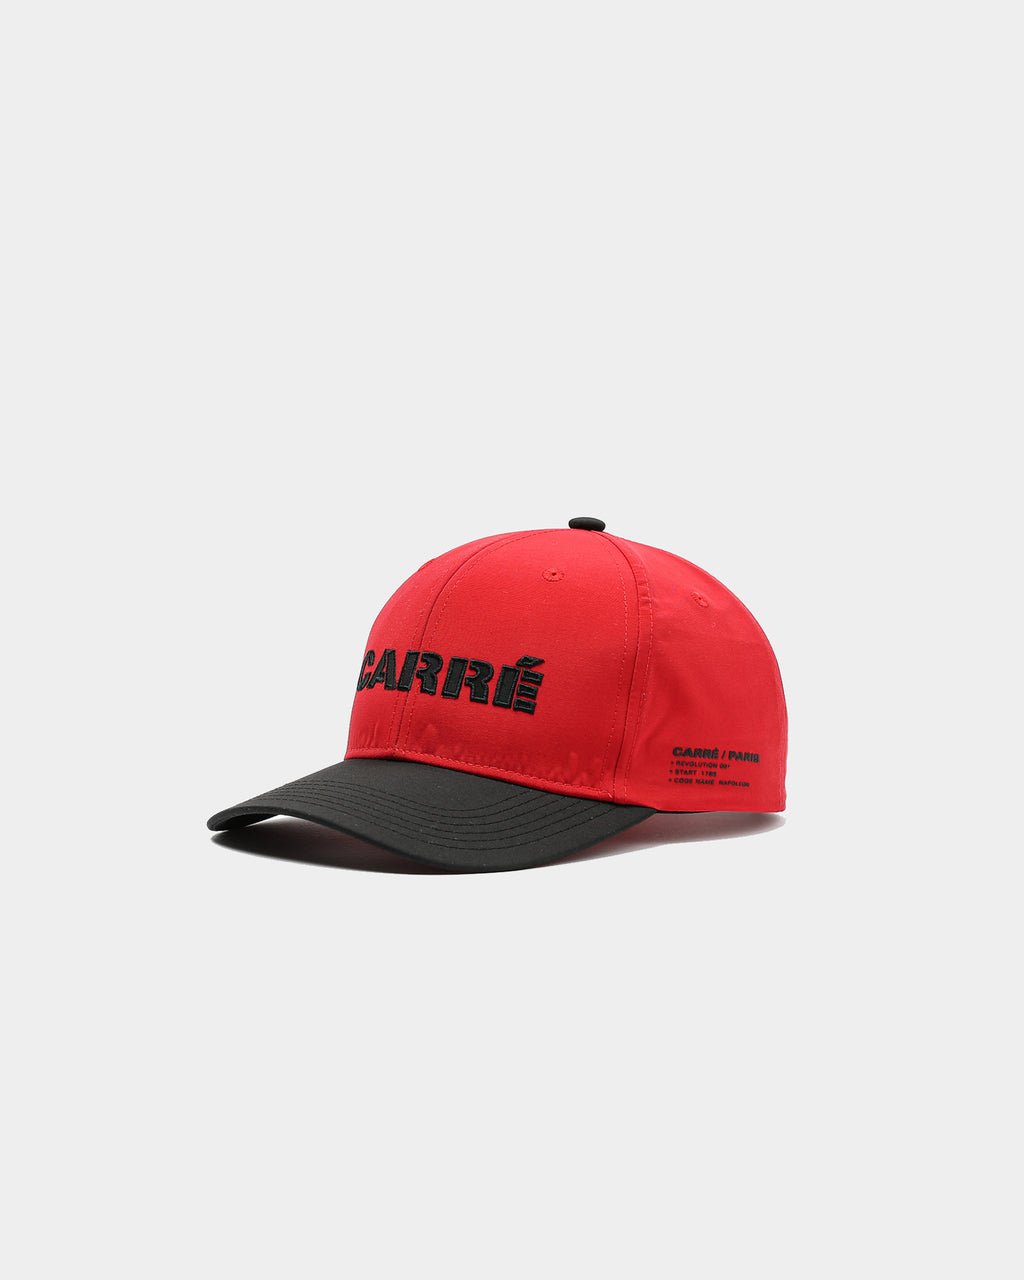 Carré Rev 001 Strapback Red/Black